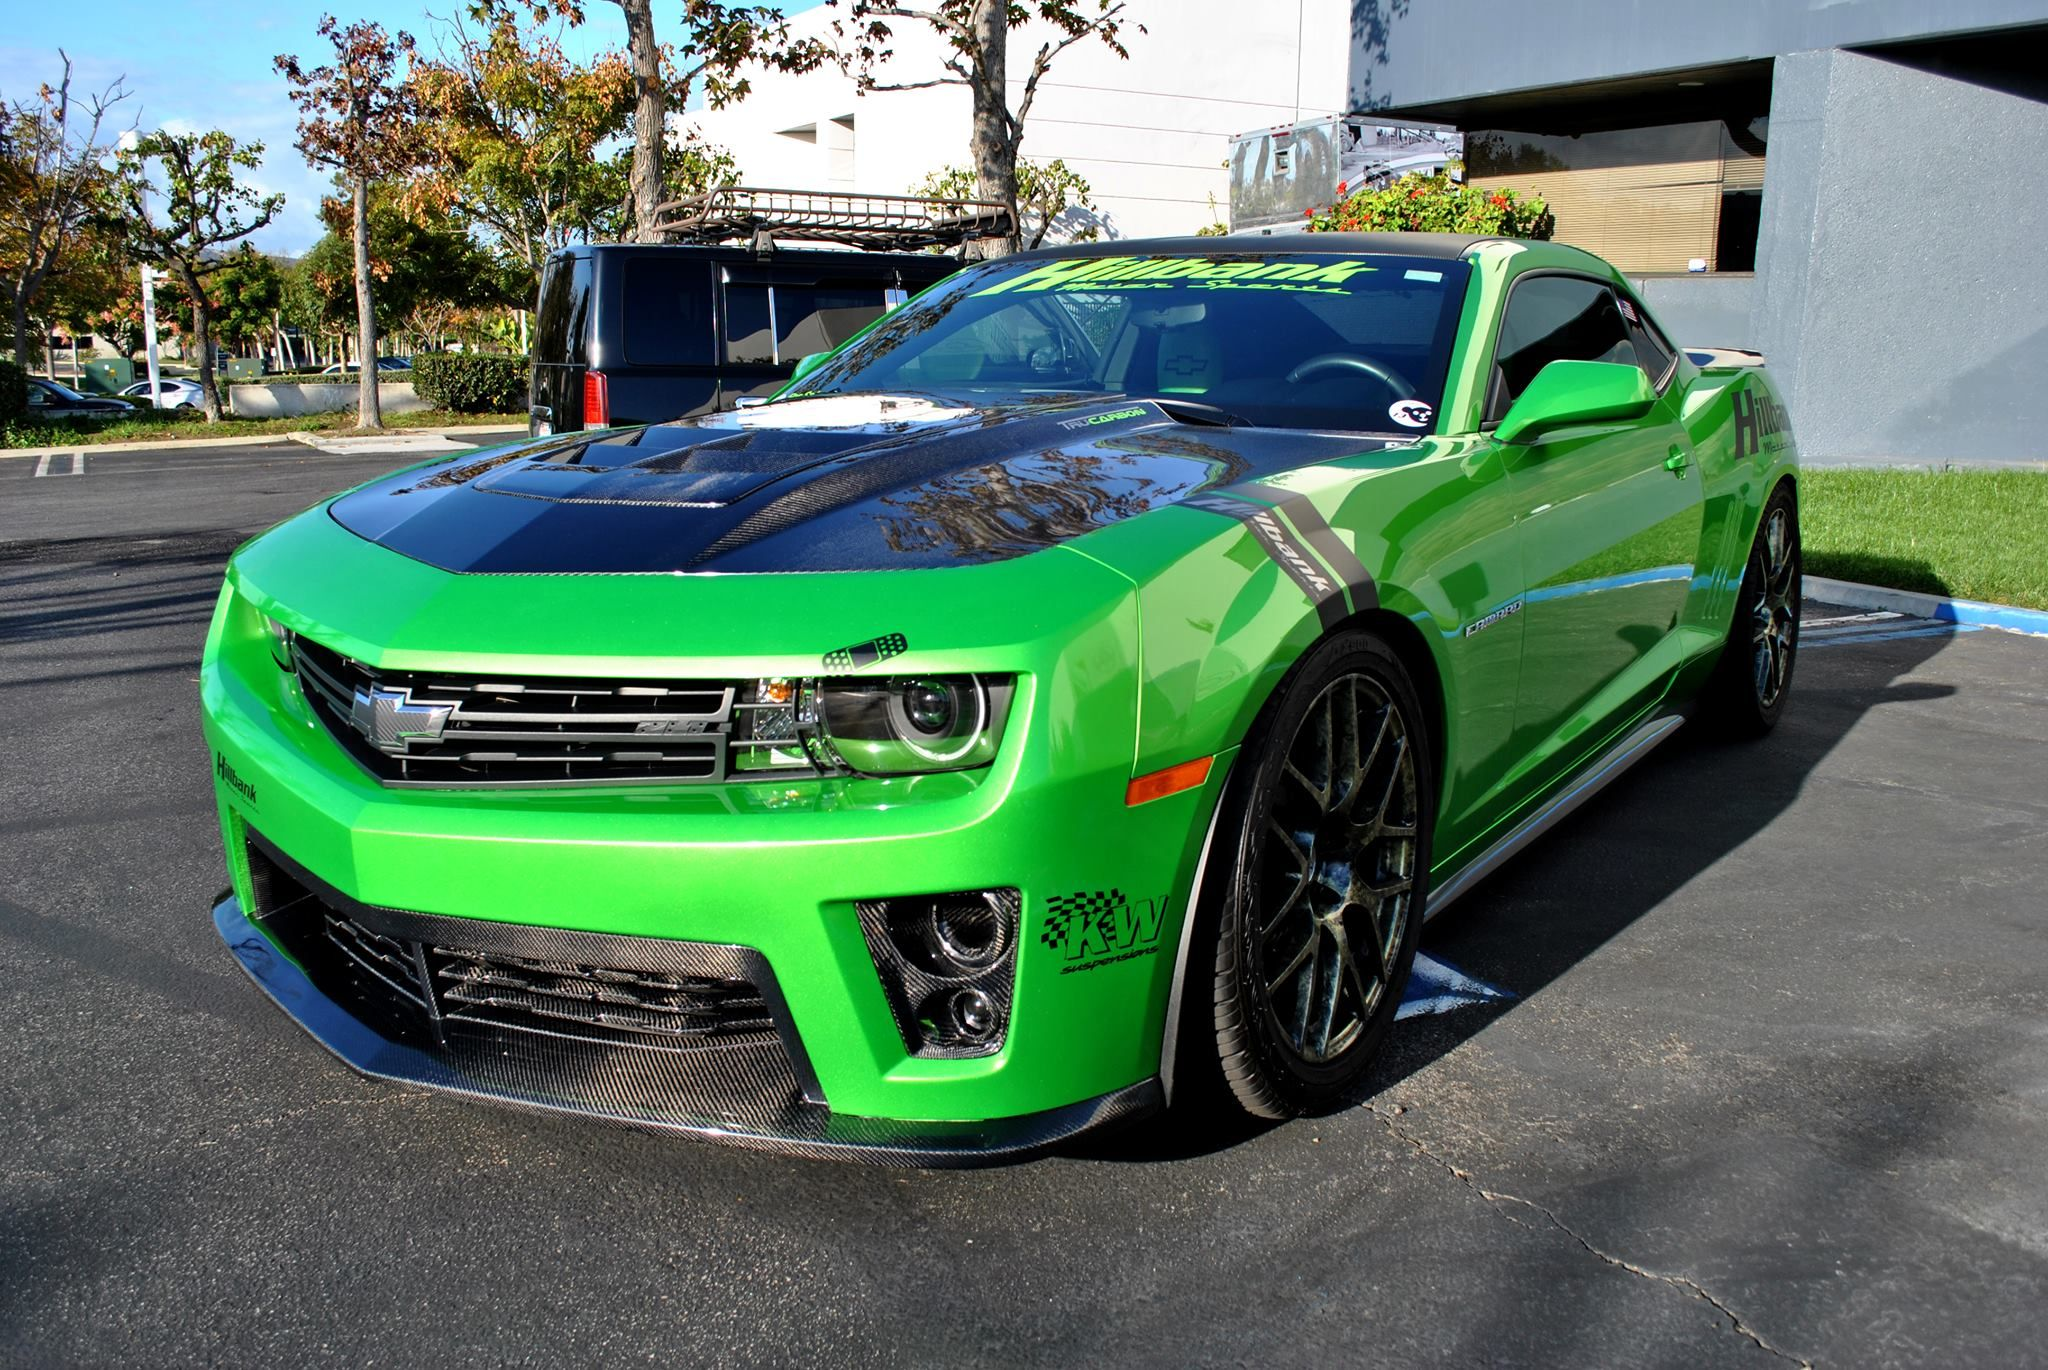 Synergy Green Supercharged For Sale Camaro5 Chevy Camaro